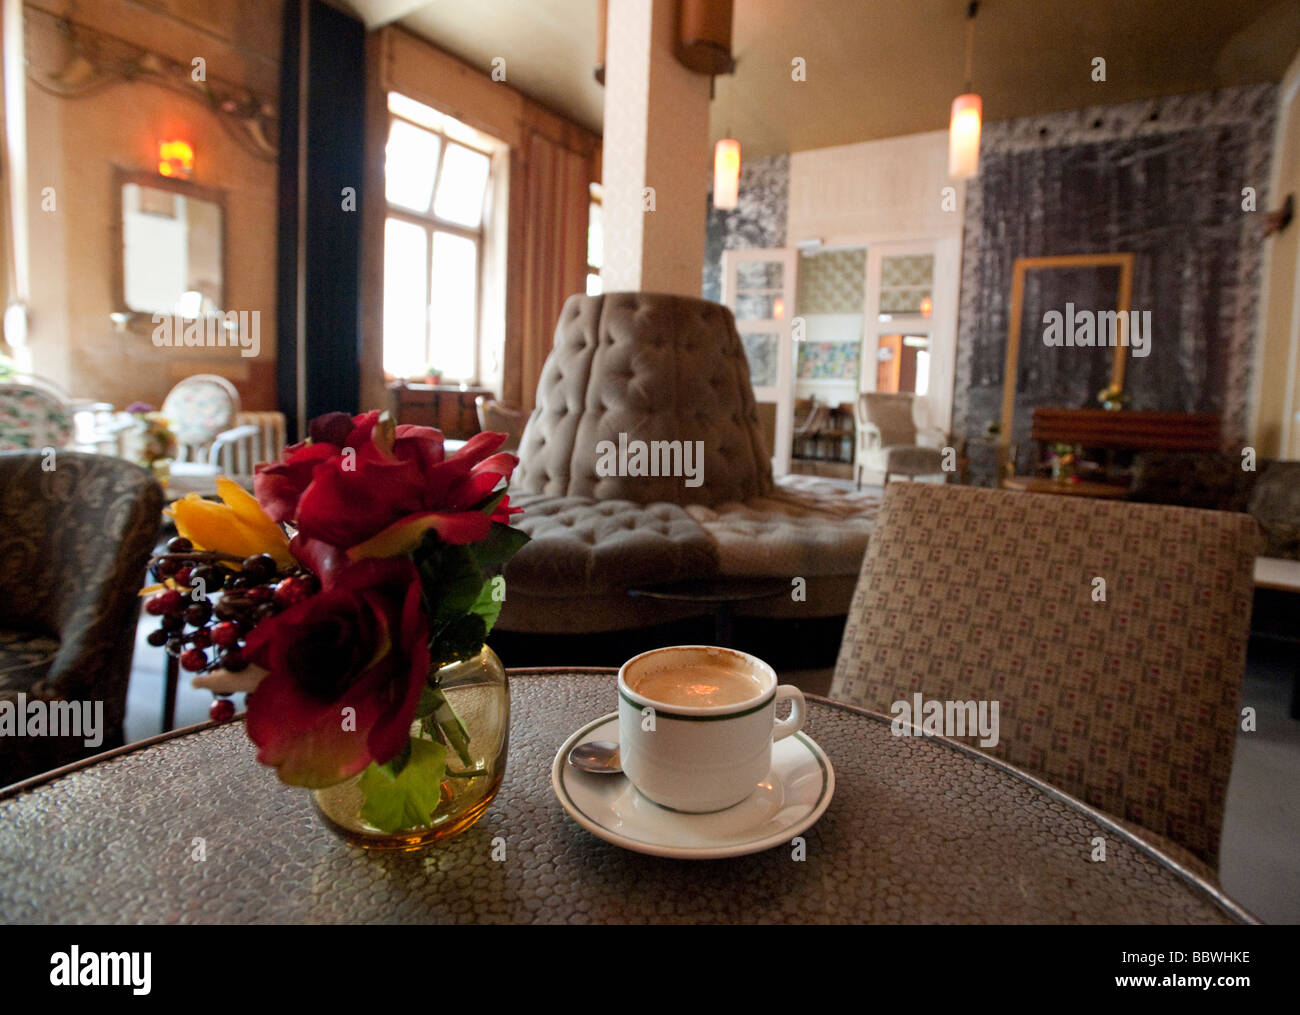 Detail Of Interior Decor And Furnishings Trendy Bohemian Cafe Called Wohnzimmer In Prenzlauer Berg Berlin Germany